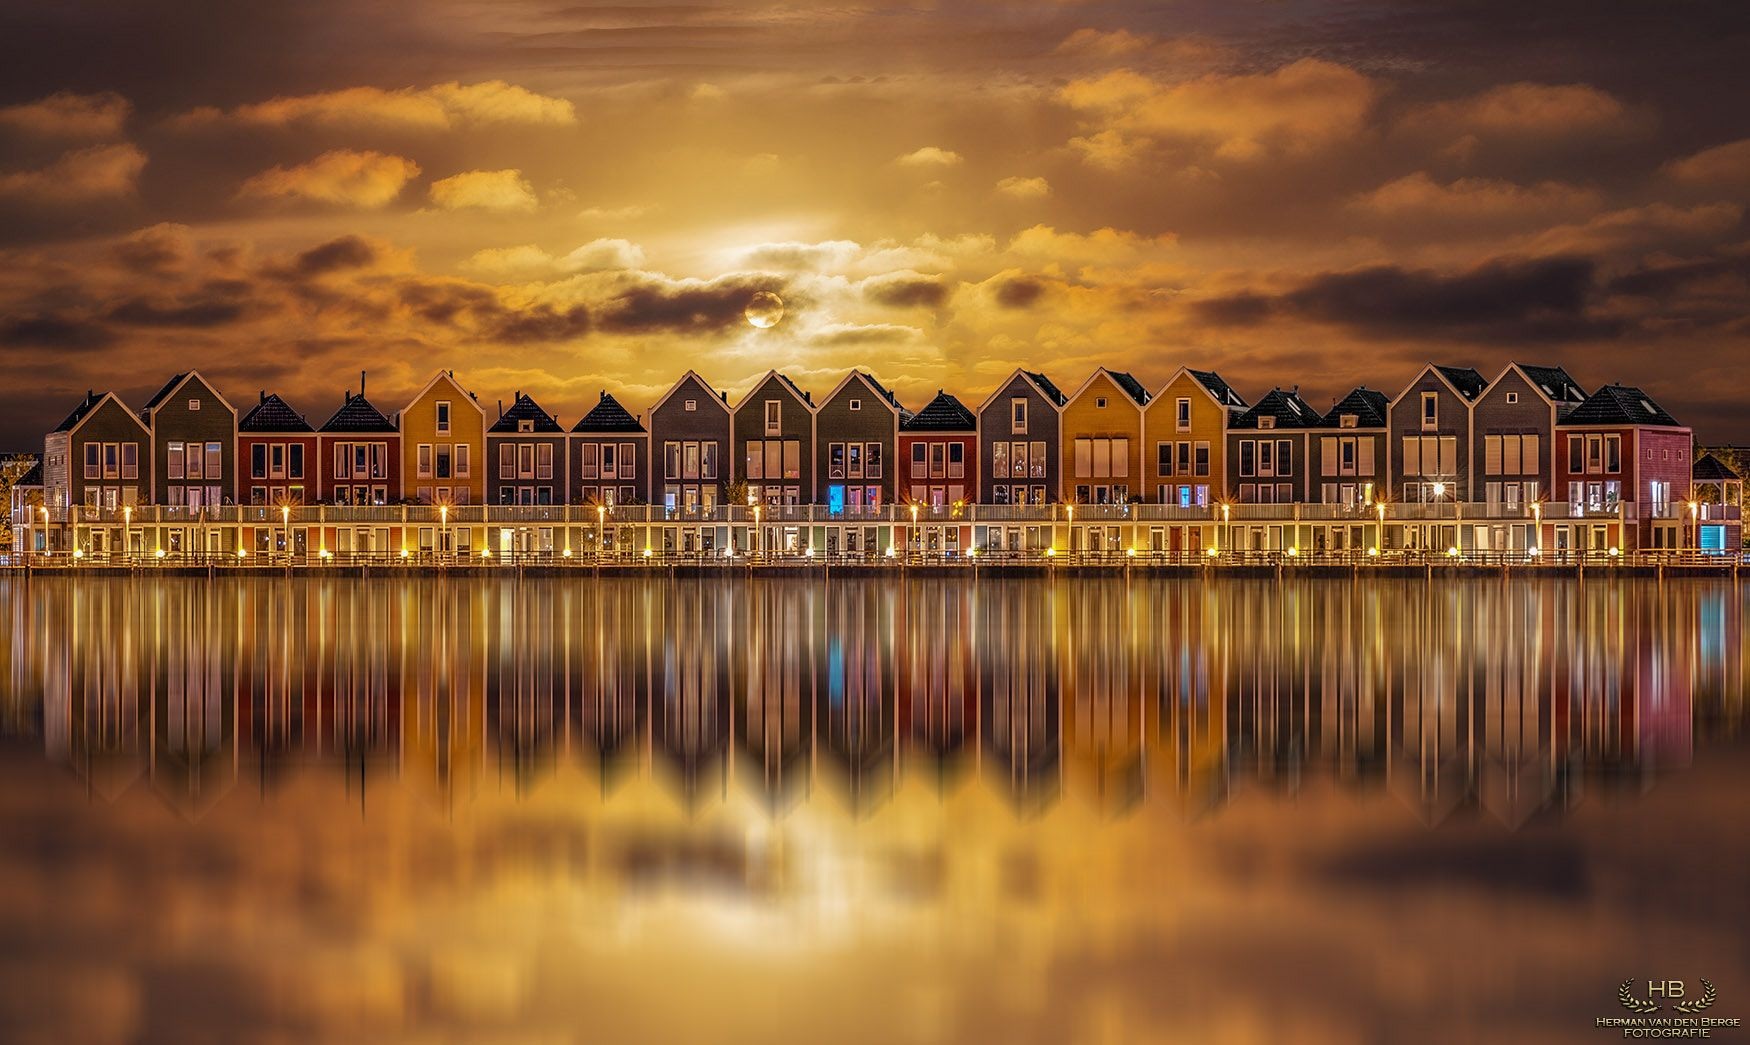 Golden Hour at Houten - Herman van den Berge   This shot was made out of 2 different exposures. Houten has some beautiful architecture which is so photogenetic....